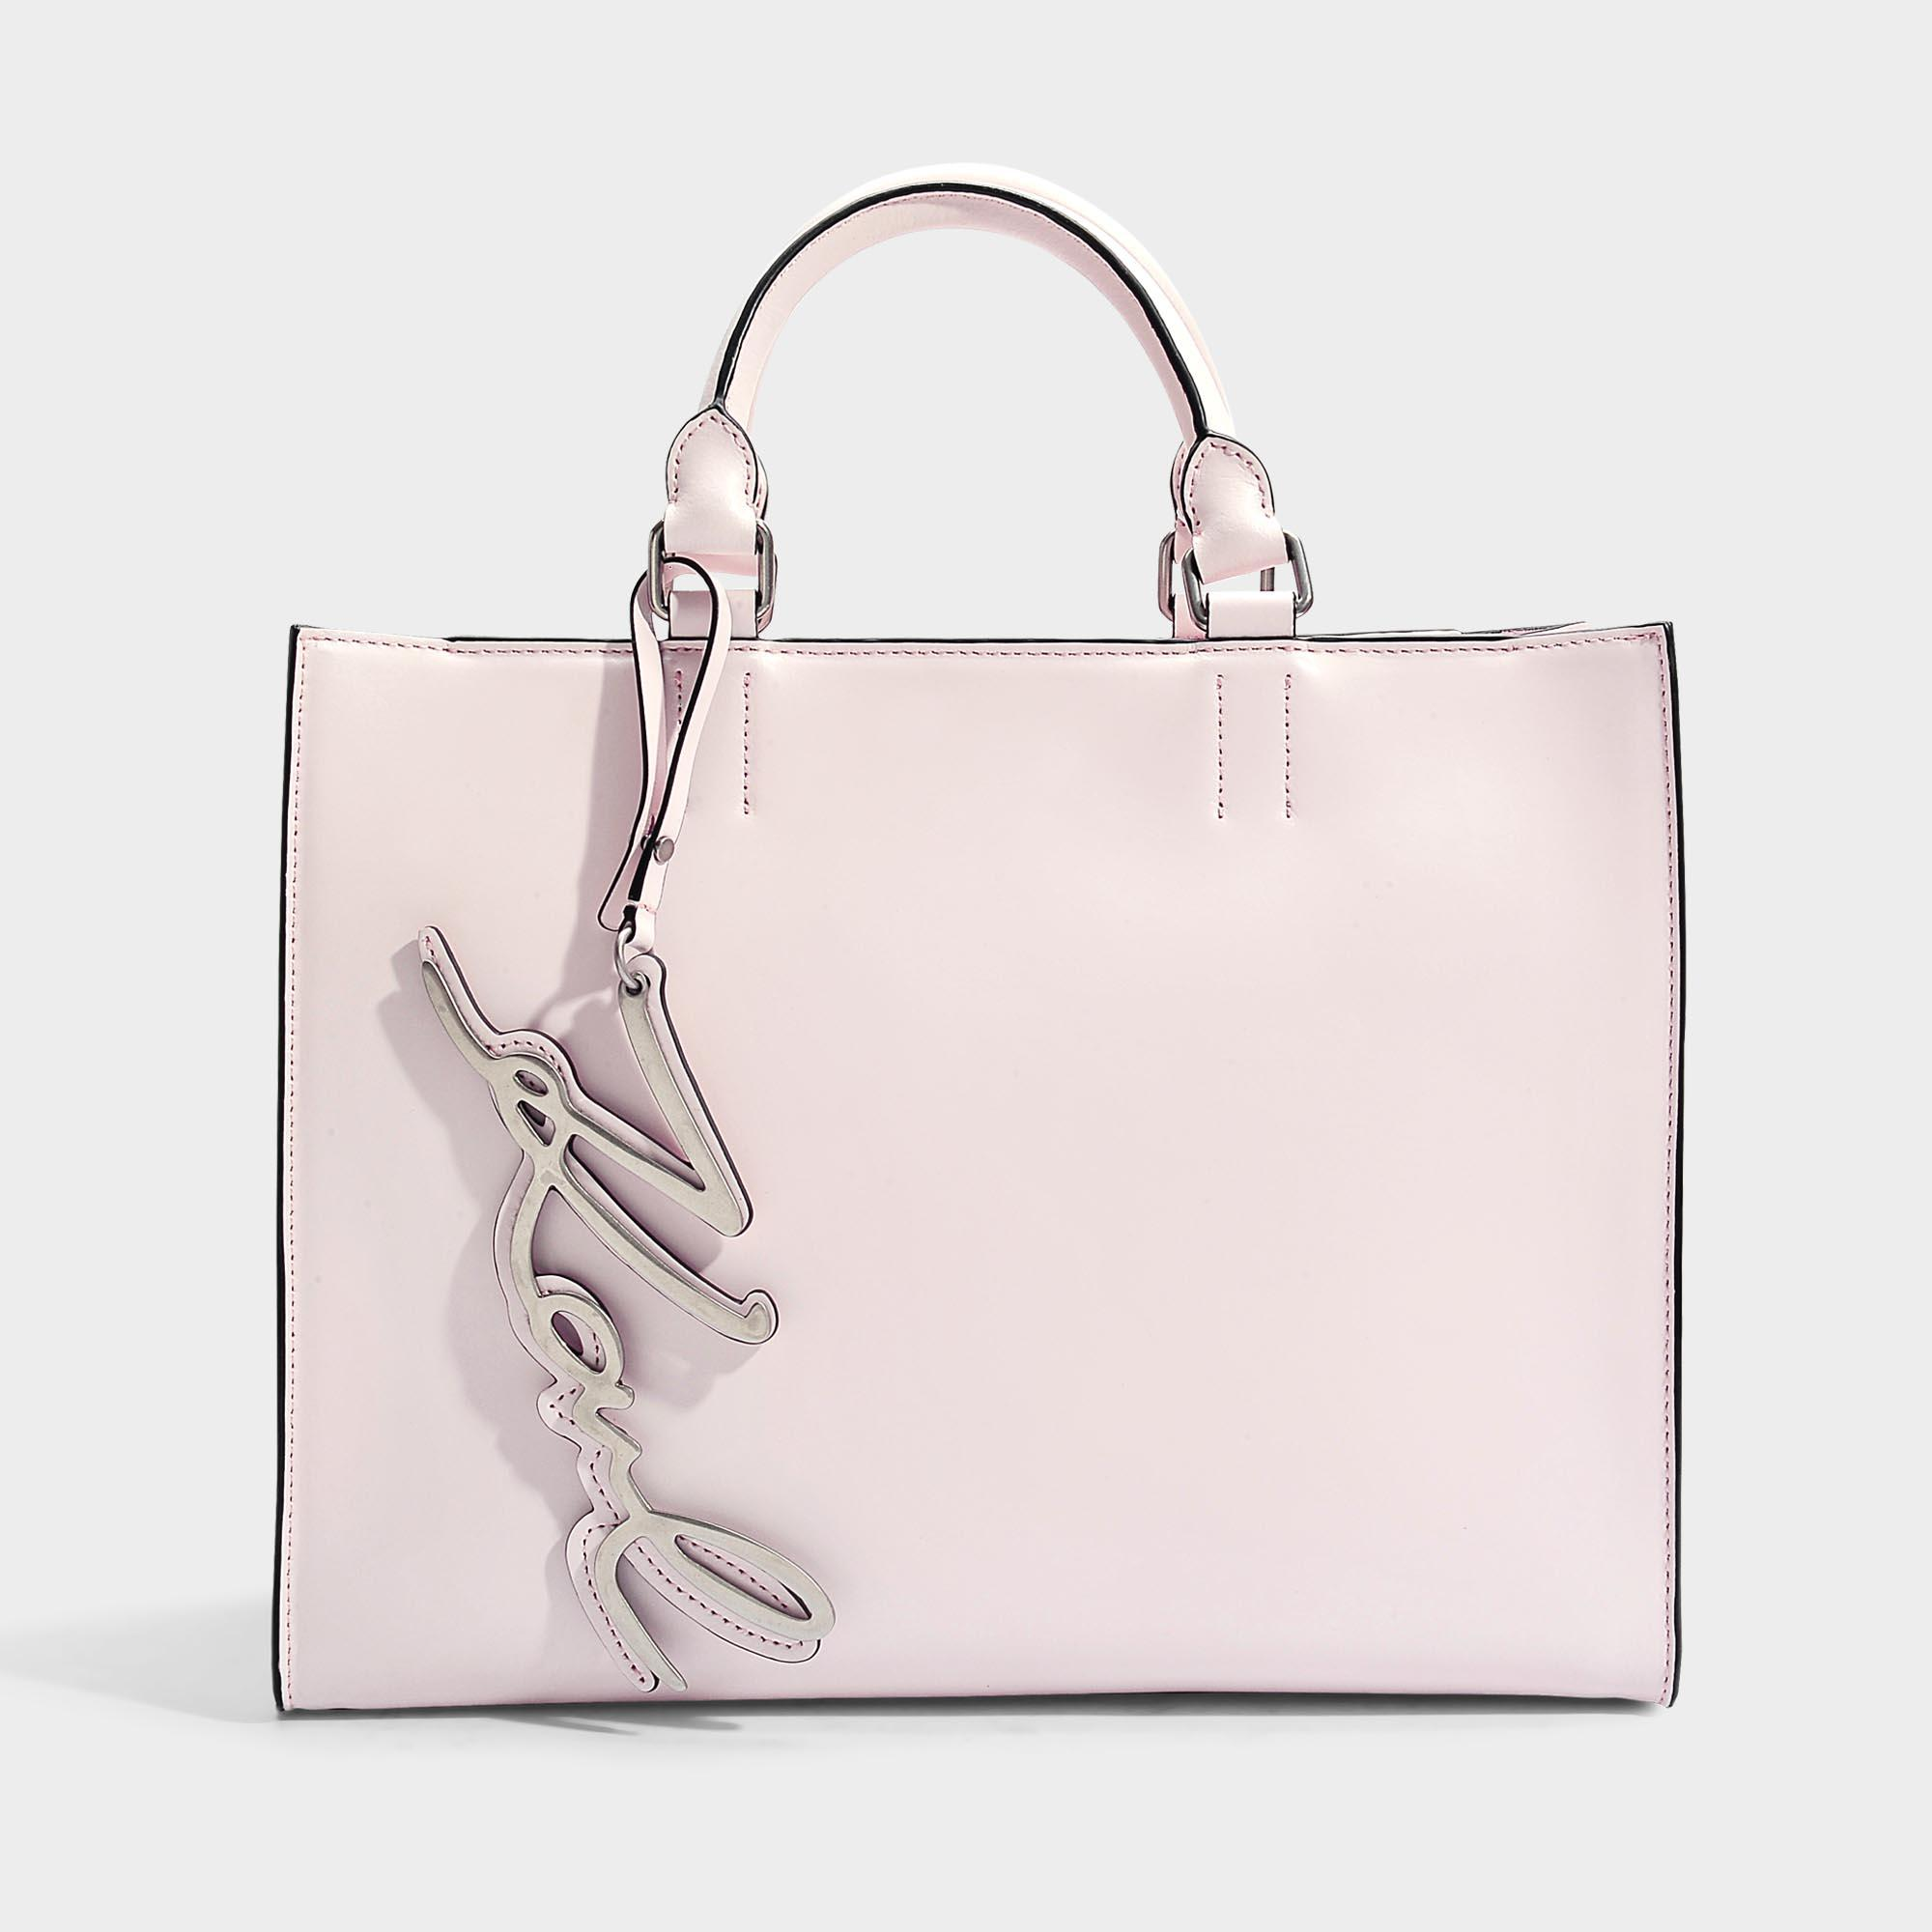 MM6 Maison Margiela Sac Shopper en Cuir Synthétique Embossé Serpent Lamé Rose p2kkA8j8oa